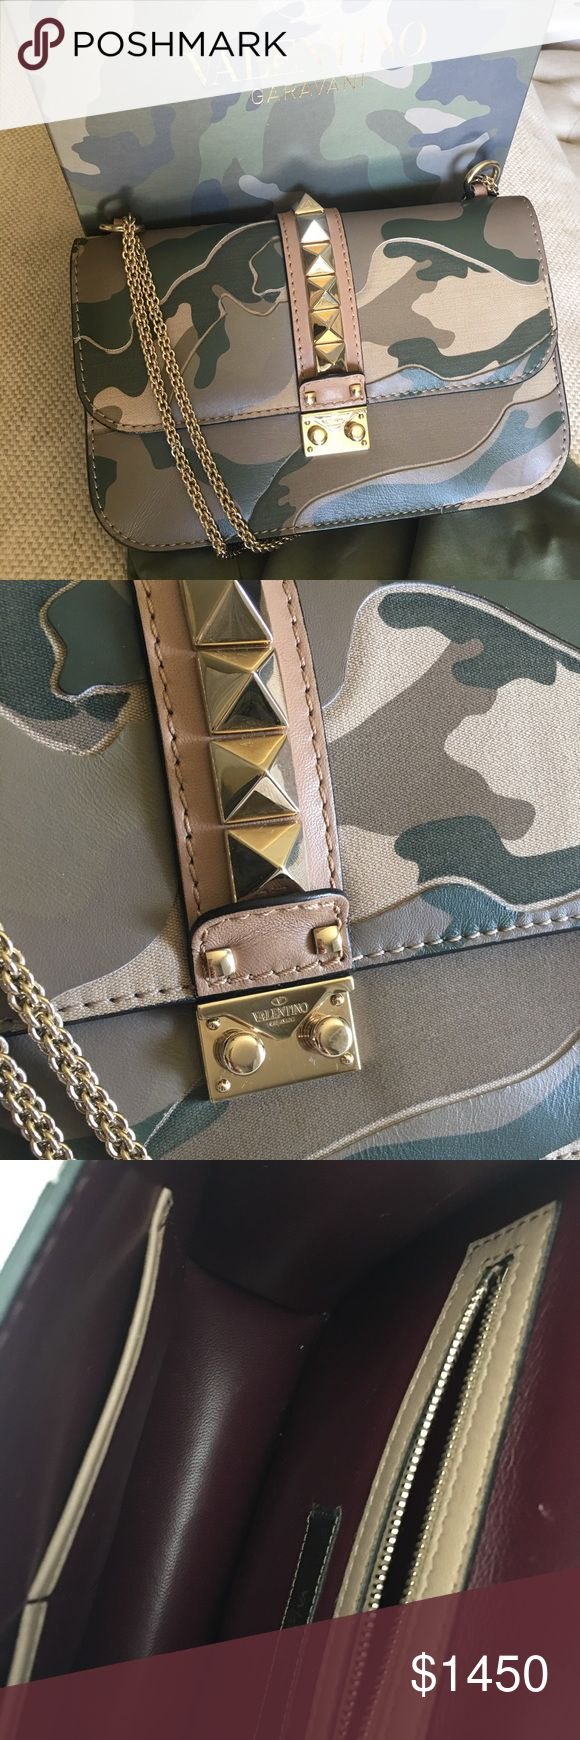 "VALENTINO Camouflage Medium Glam Lock Flap Bag Very good conditions, minor scratches inside. More pictures available. 11""x7""x3"" chain drop 20"". NO TRADE OR MAJOR DISCOUNTS. Thanks Valentino Bags Shoulder Bags"